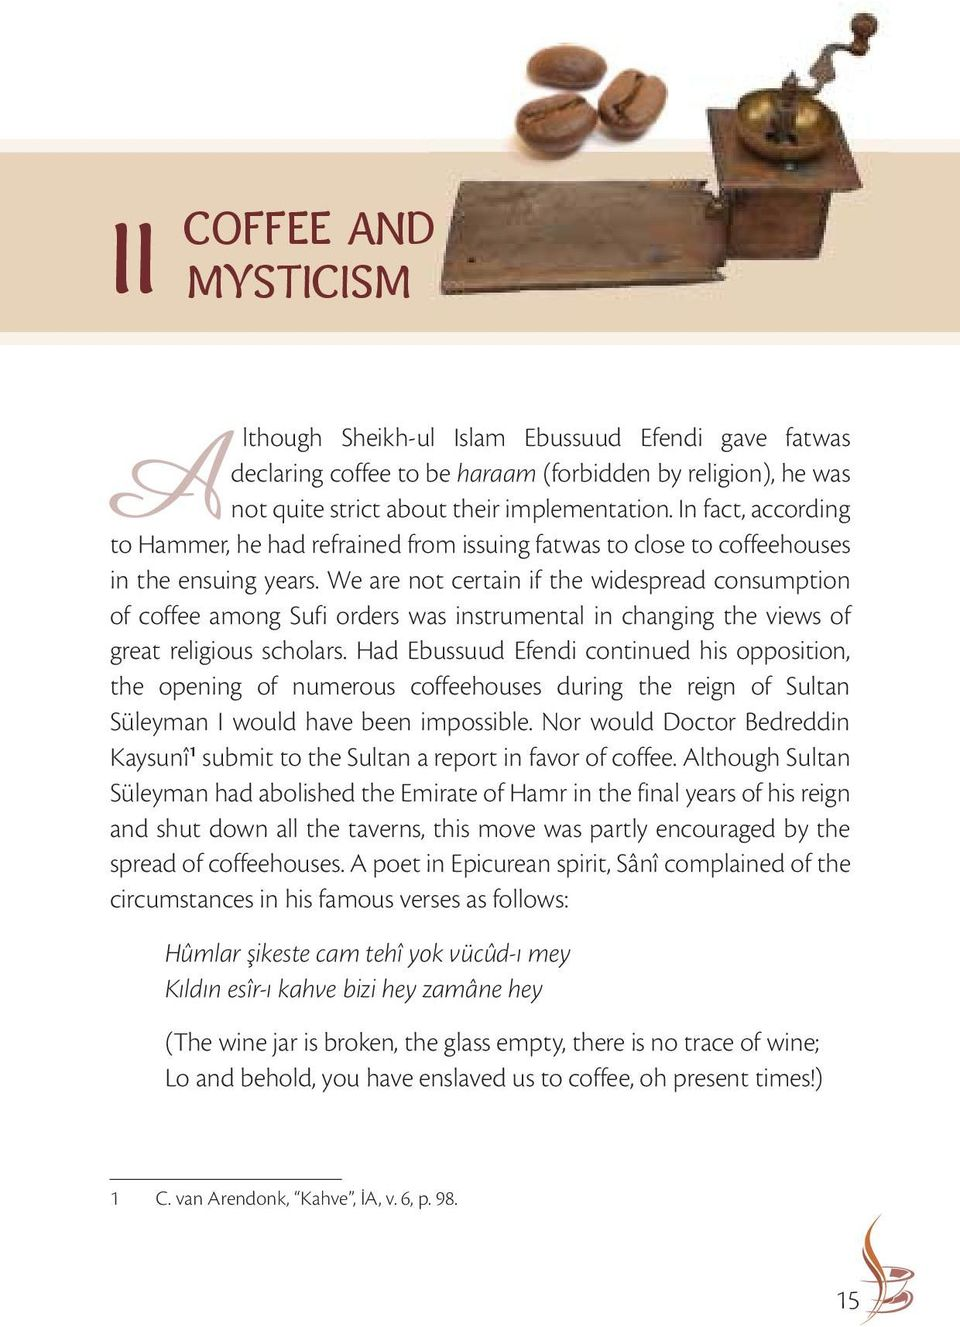 We are not certain if the widespread consumption of coffee among Sufi orders was instrumental in changing the views of great religious scholars.